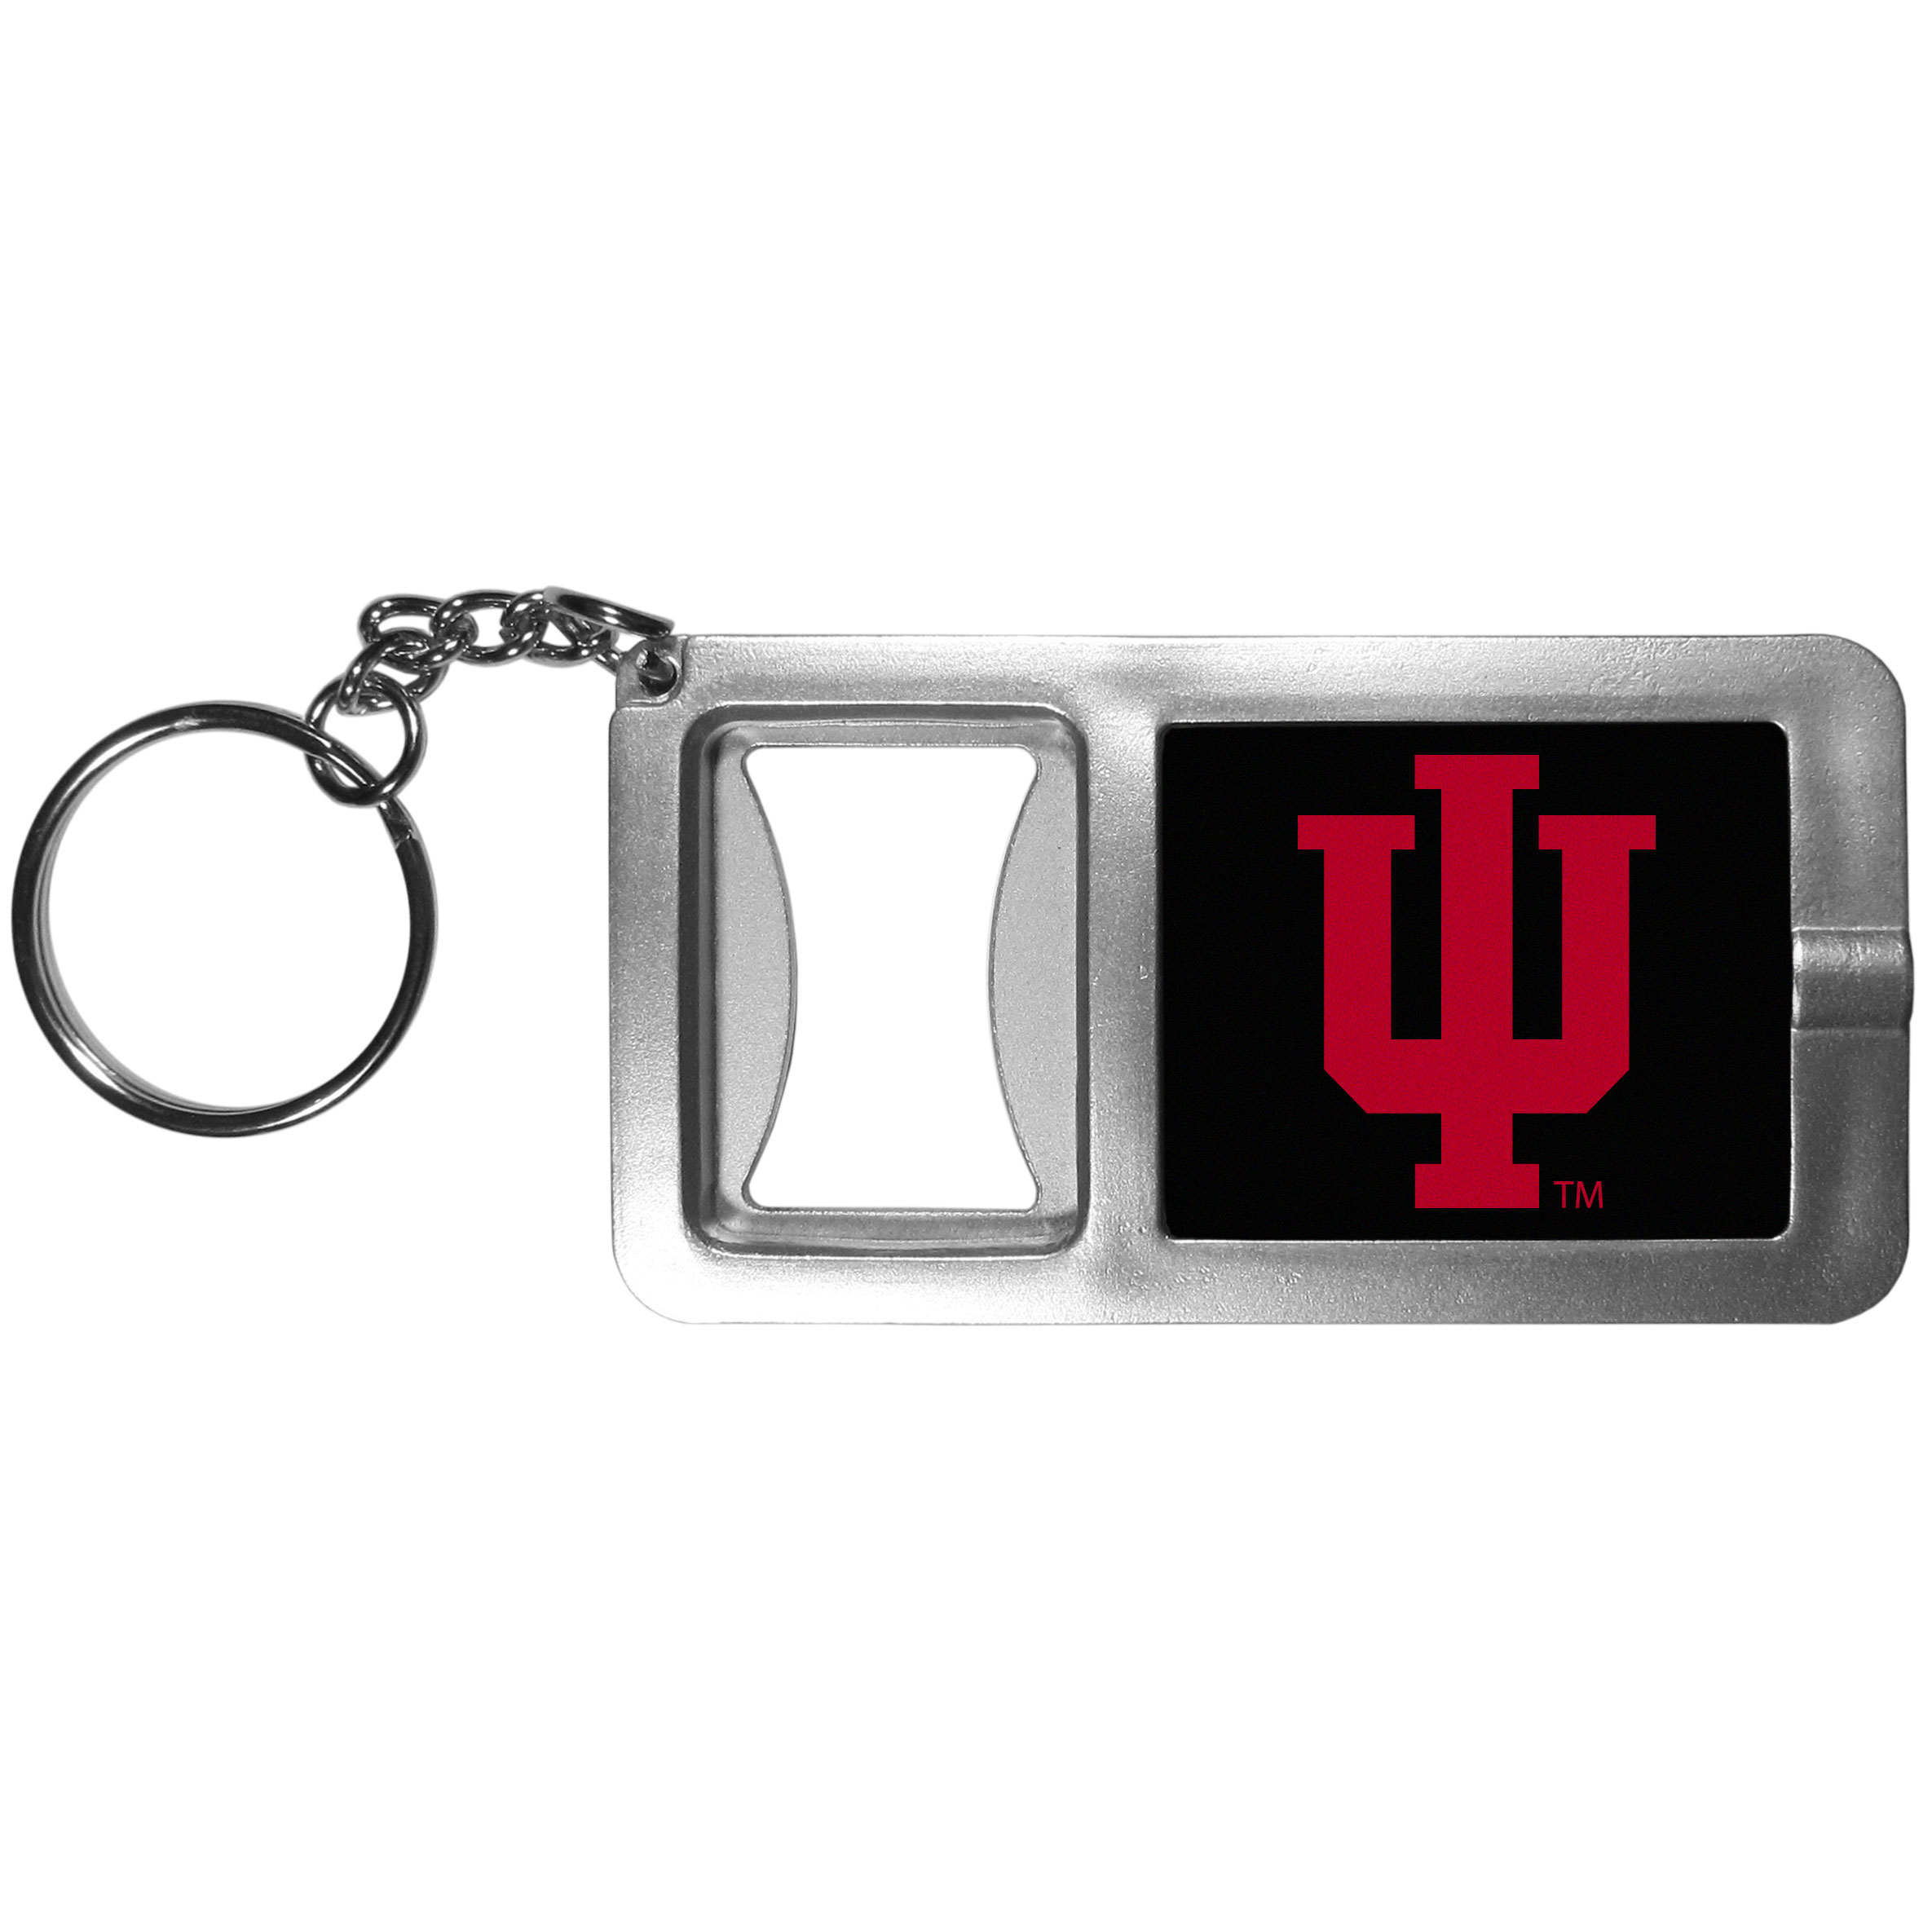 Indiana Hoosiers Flashlight Key Chain with Bottle Opener - Never be without light with our Indiana Hoosiers flashlight keychain that features a handy bottle opener feature. This versatile key chain is perfect for camping and travel and is a great way to show off your team pride!